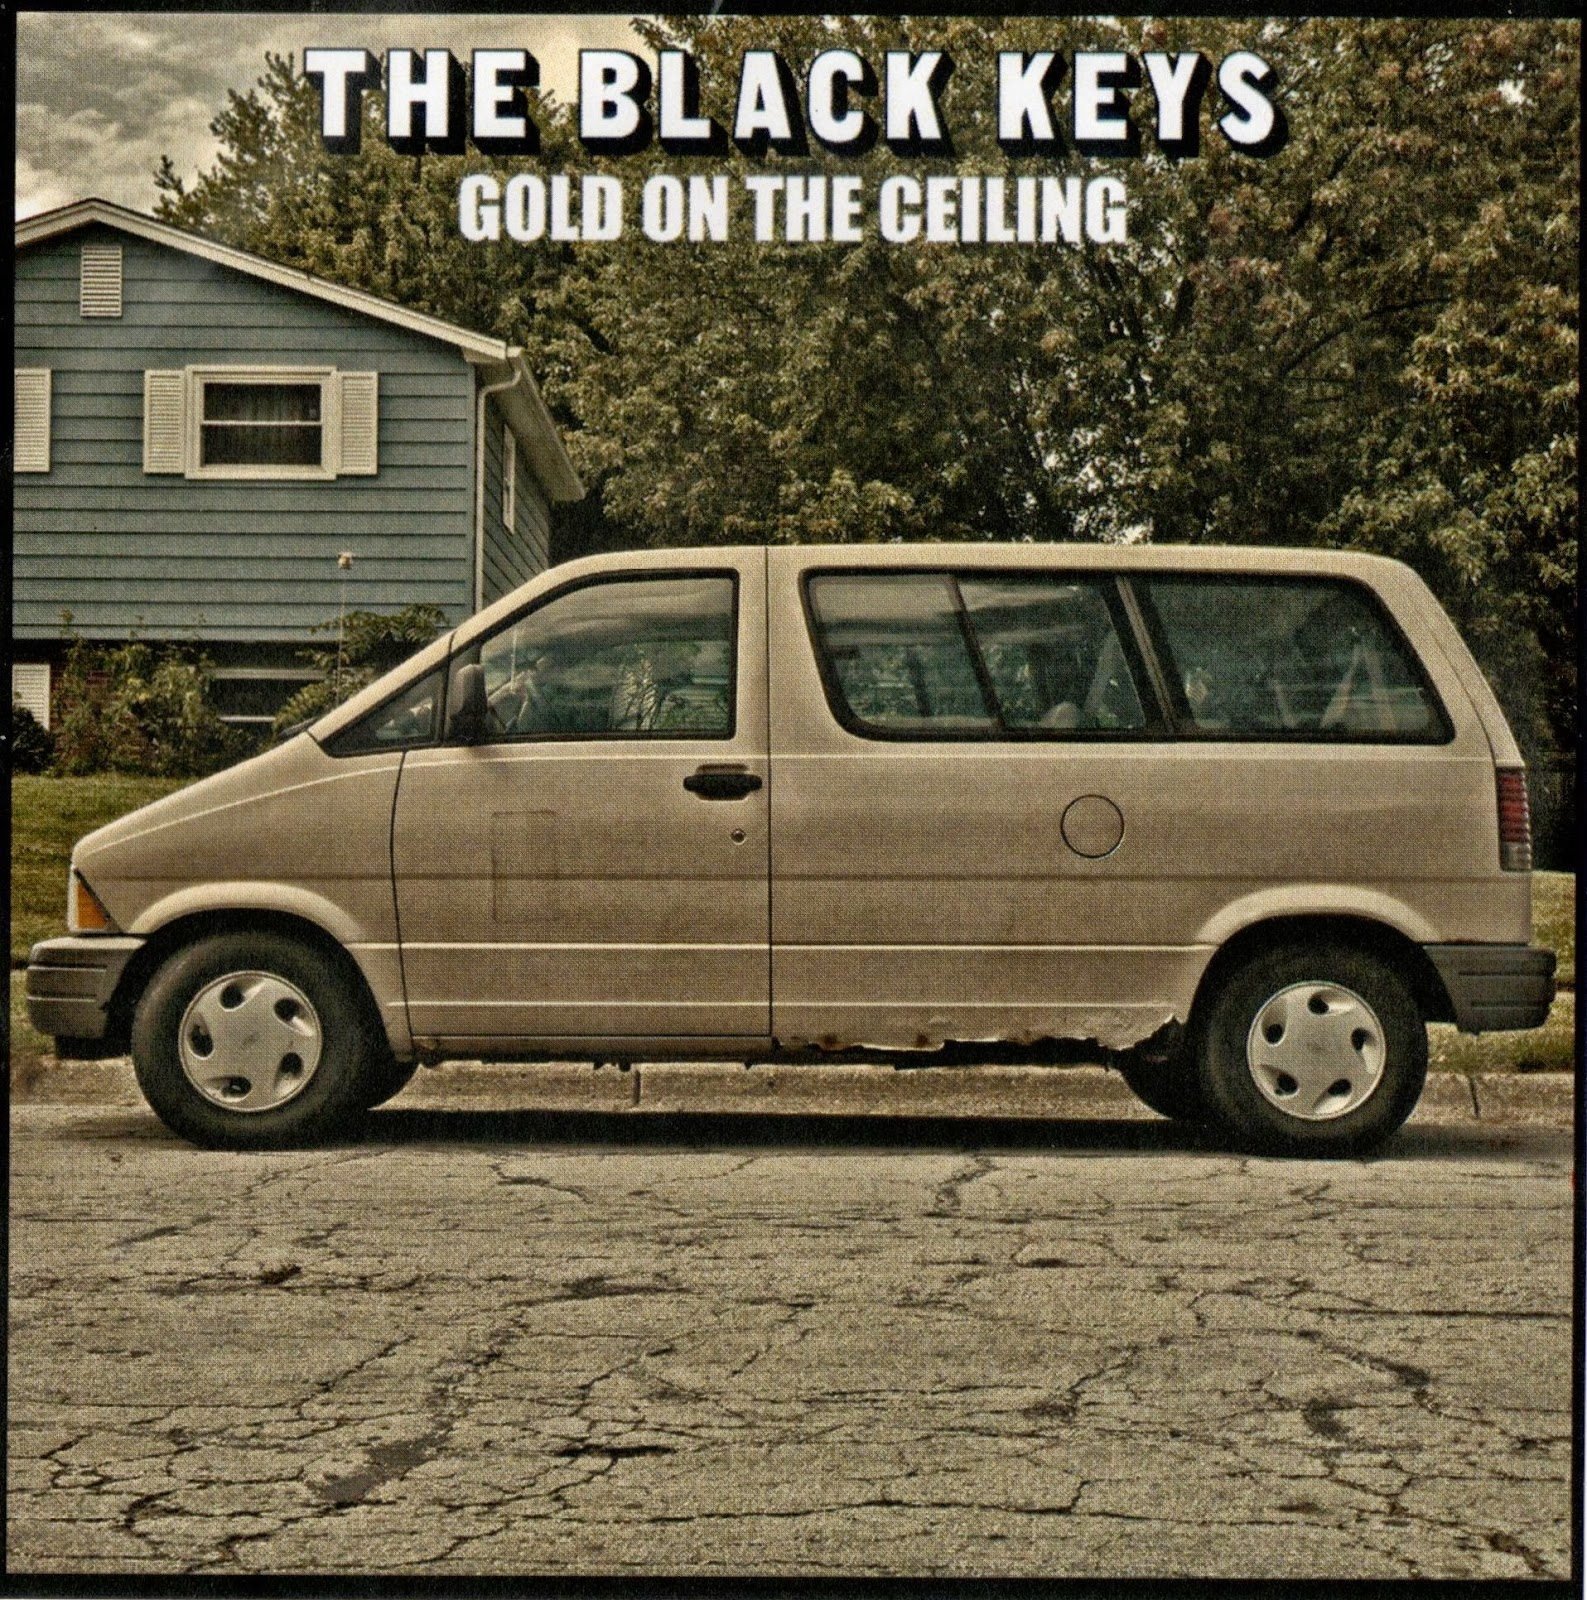 Gold On The Ceiling : the black keys collection gold on the ceiling cdr promo france ~ Hamham.info Haus und Dekorationen